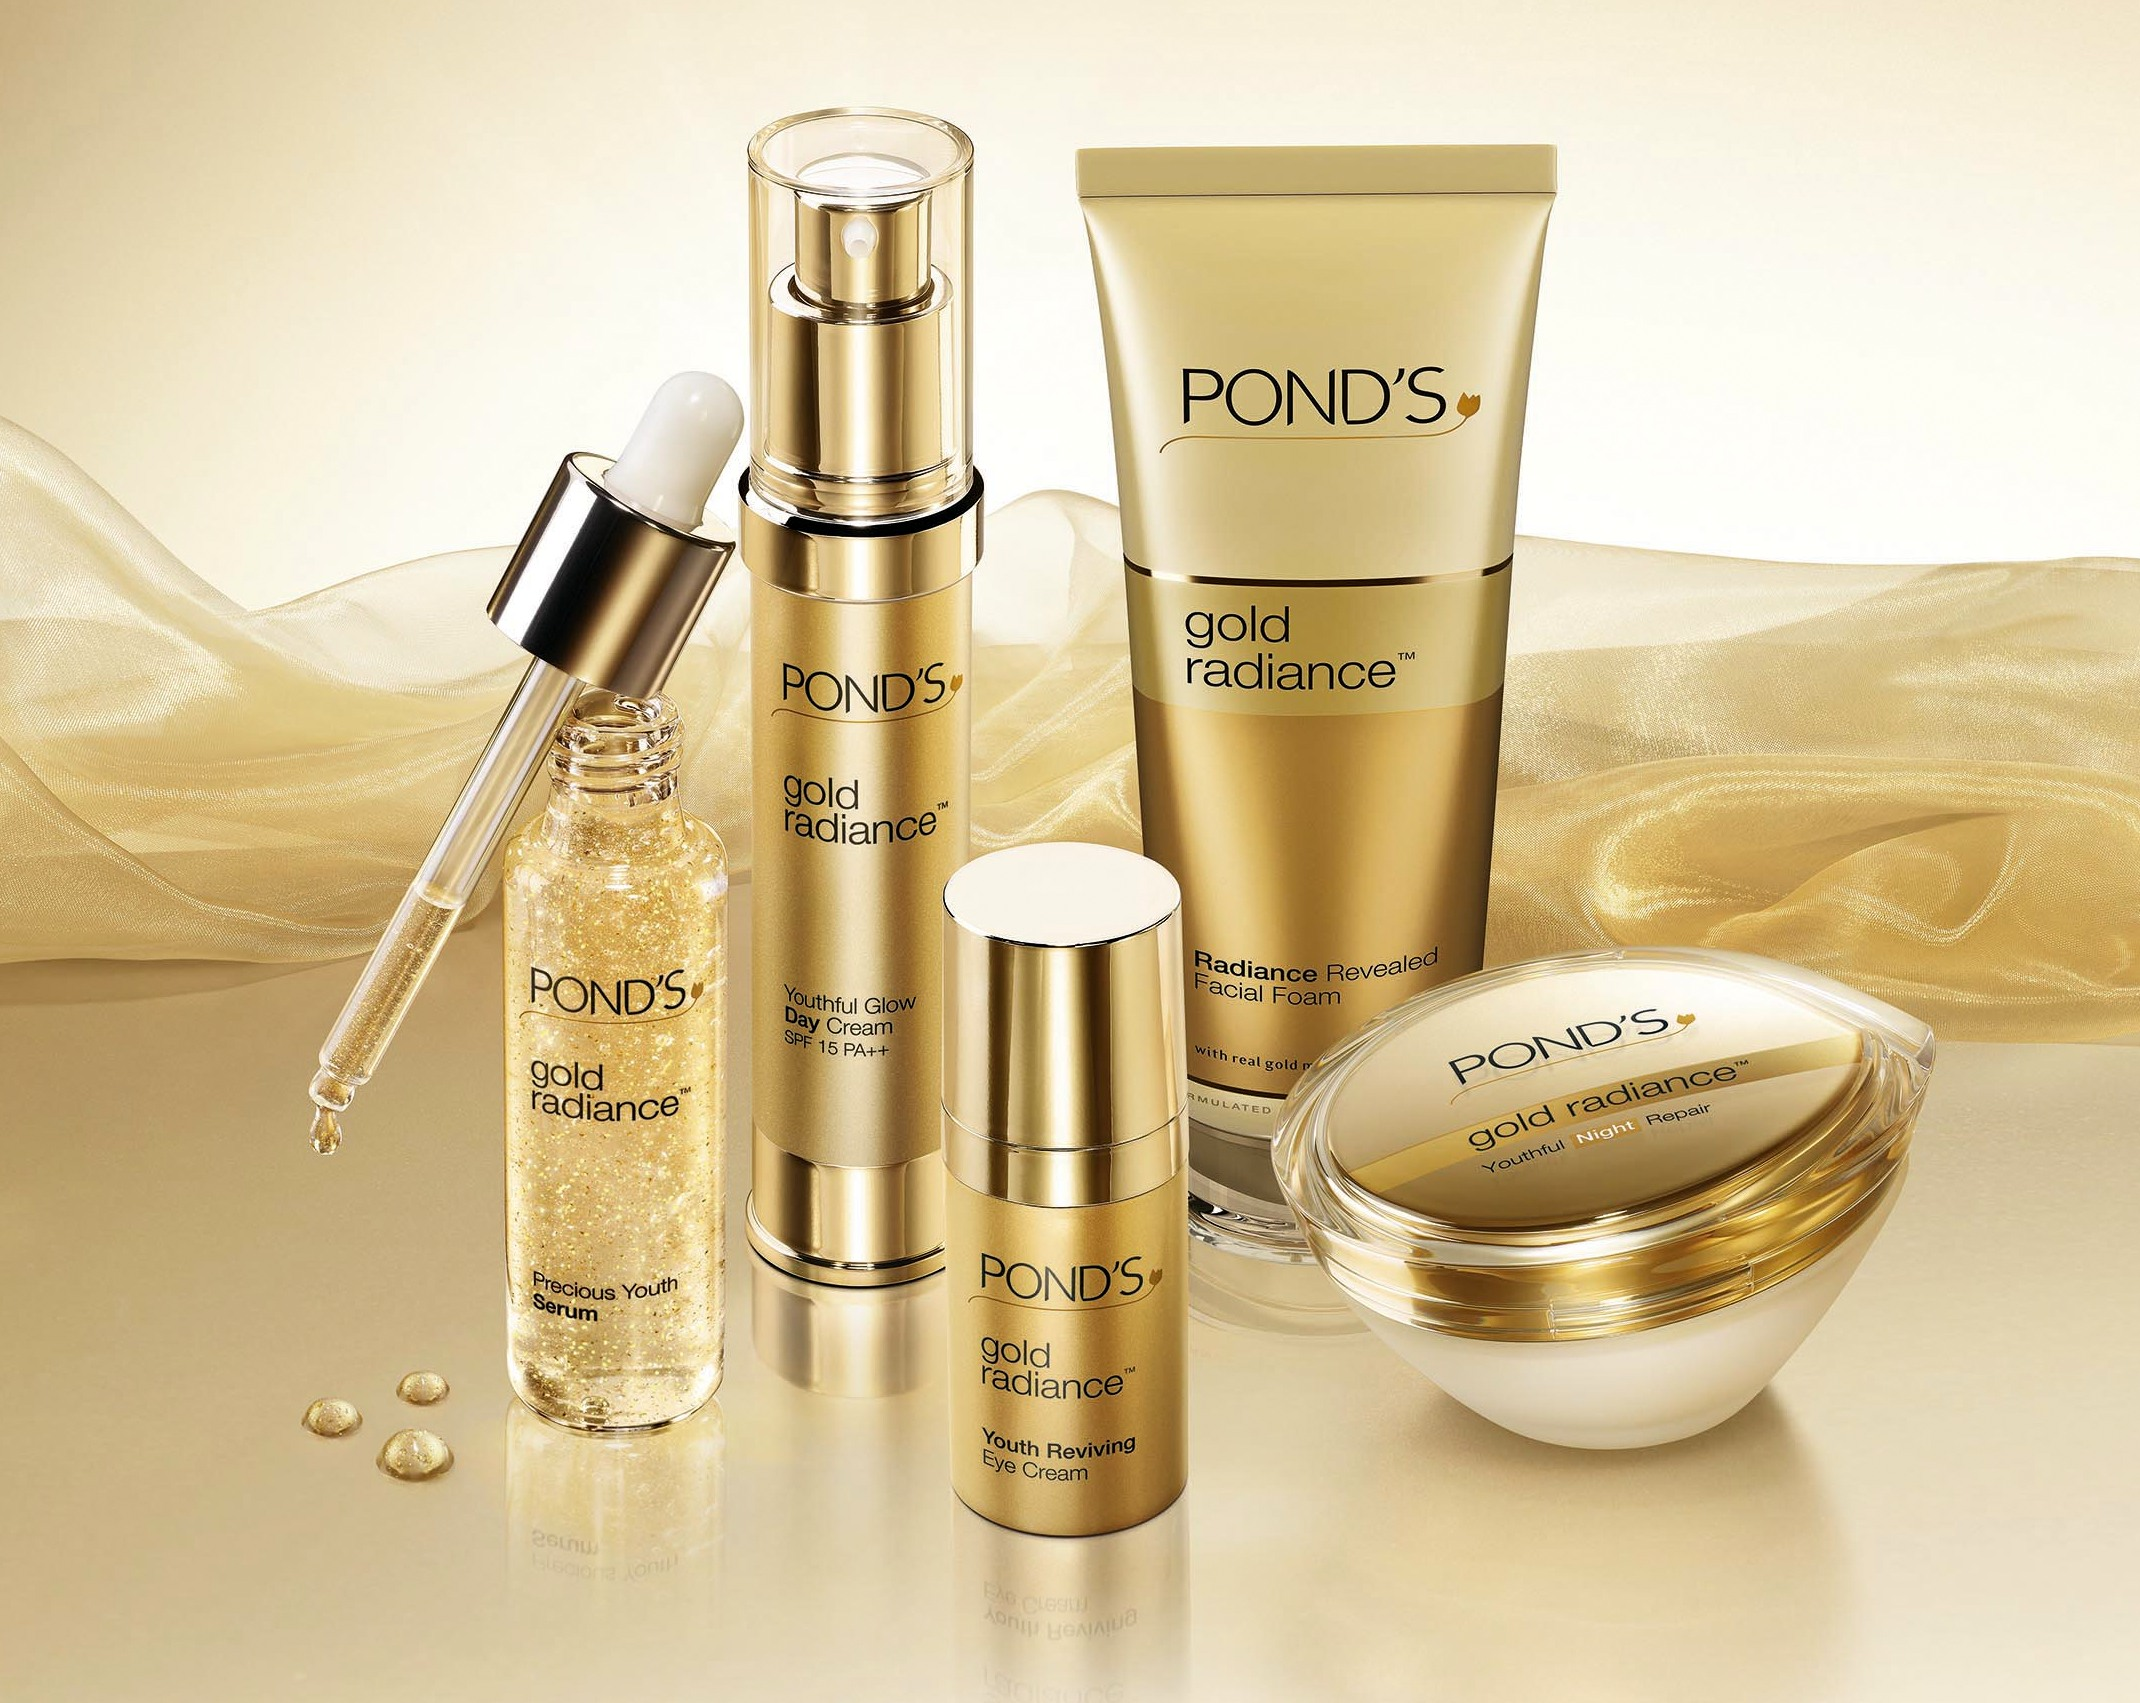 Ponds gold radiance the review shahnaz loves beauty for Ponds products